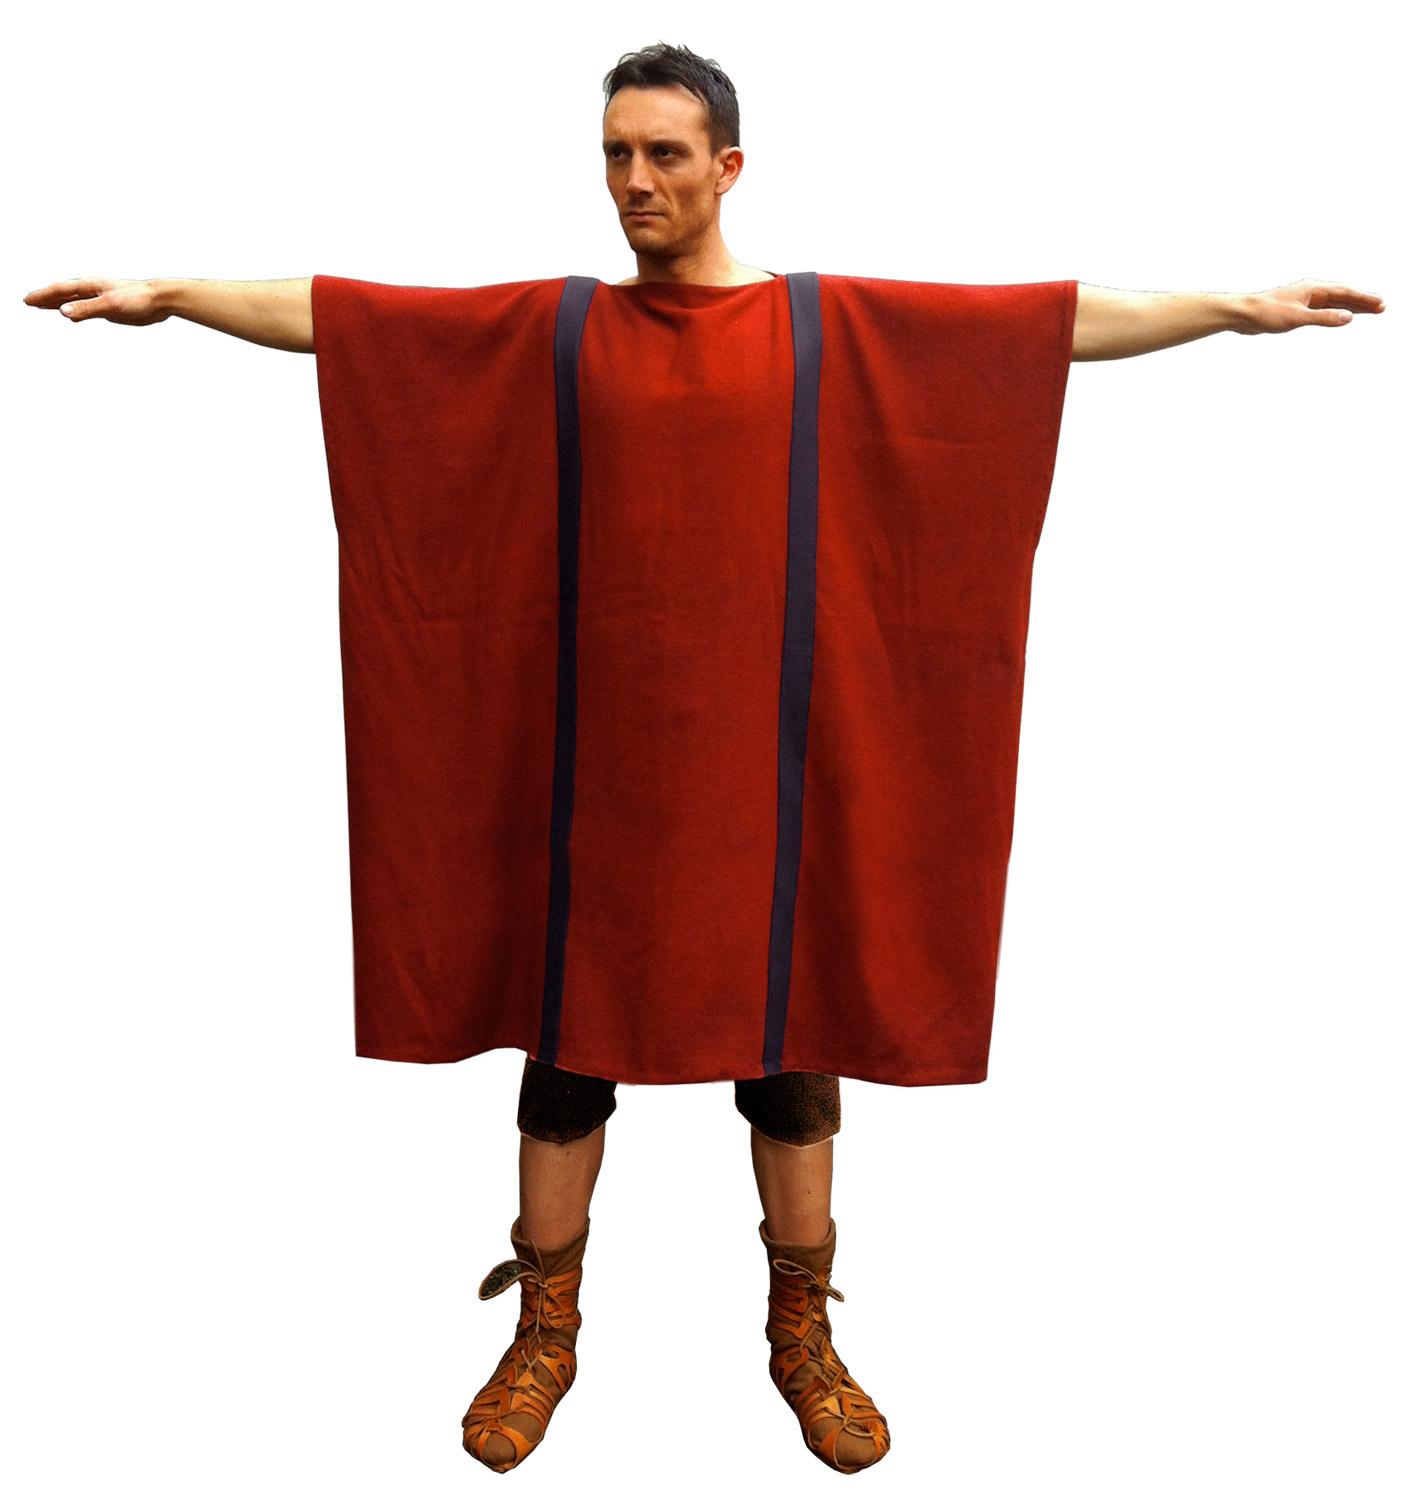 Ancient Roman Clothing For Men: First Century Roman Tunic, Roman Clothing For Sale